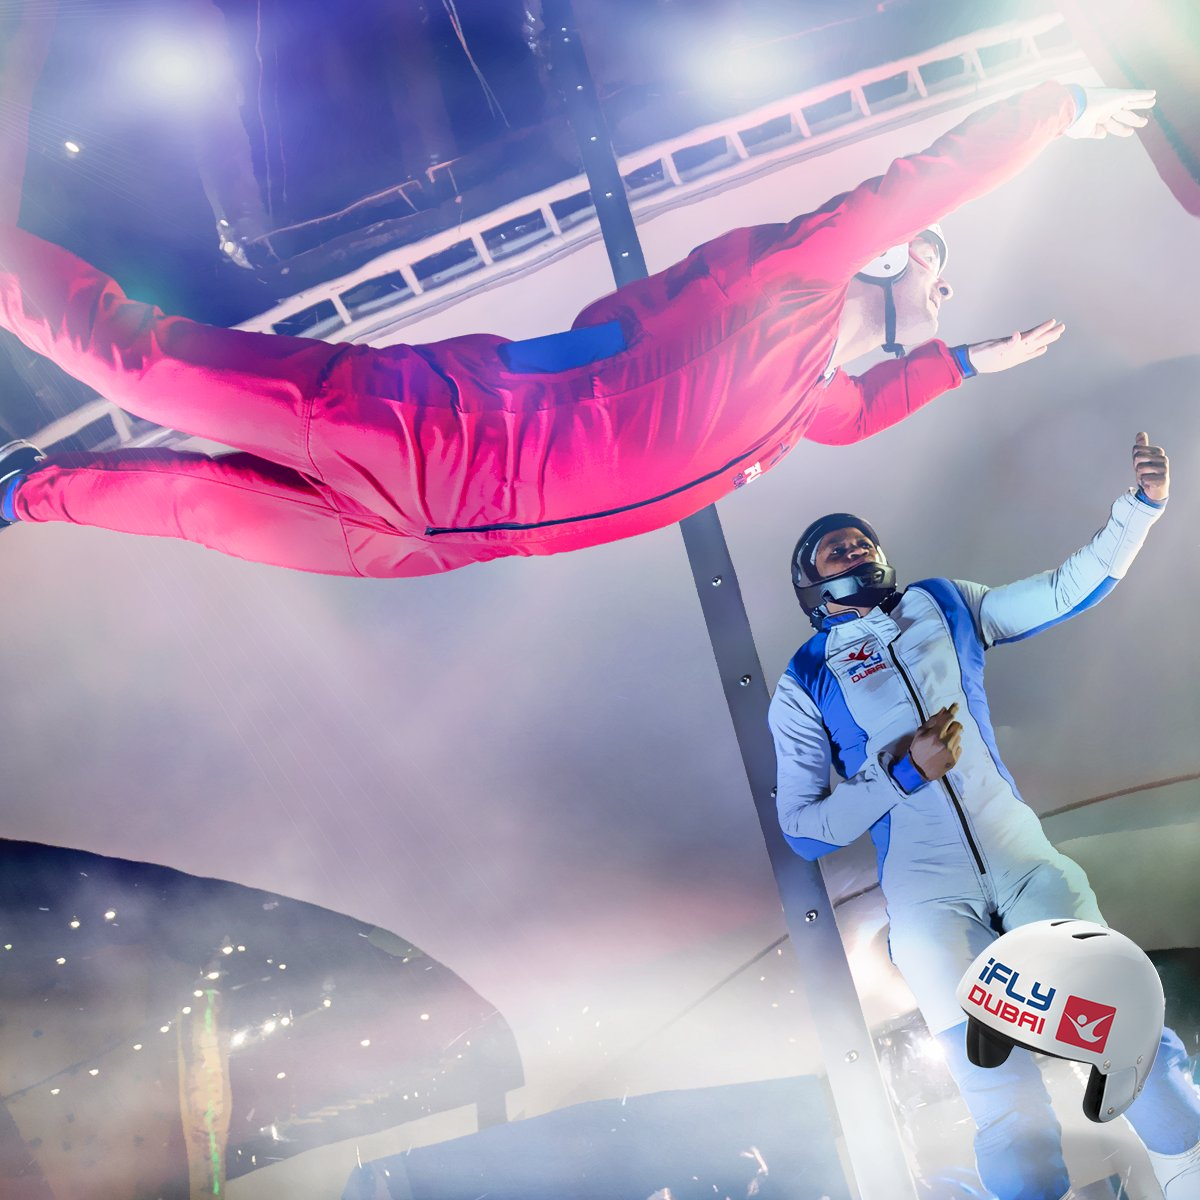 iFLY - UAE's First Indoor Skydiving Experience | The Playmania